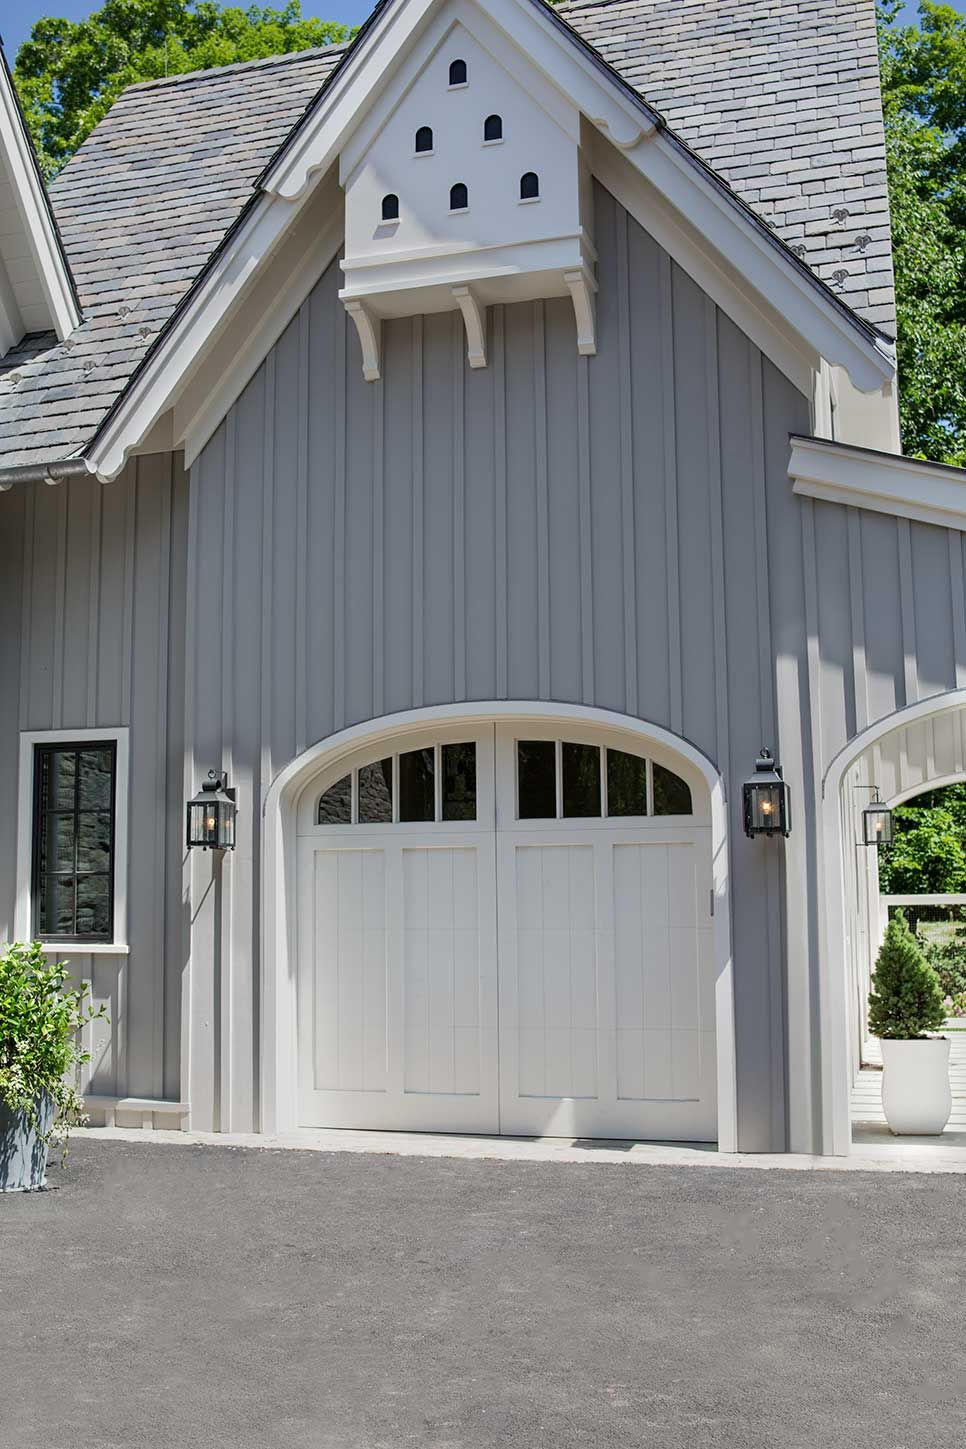 Love The Siding Garage Door Little Bird Bat House Above Ueco Portfolio Environment Exterior